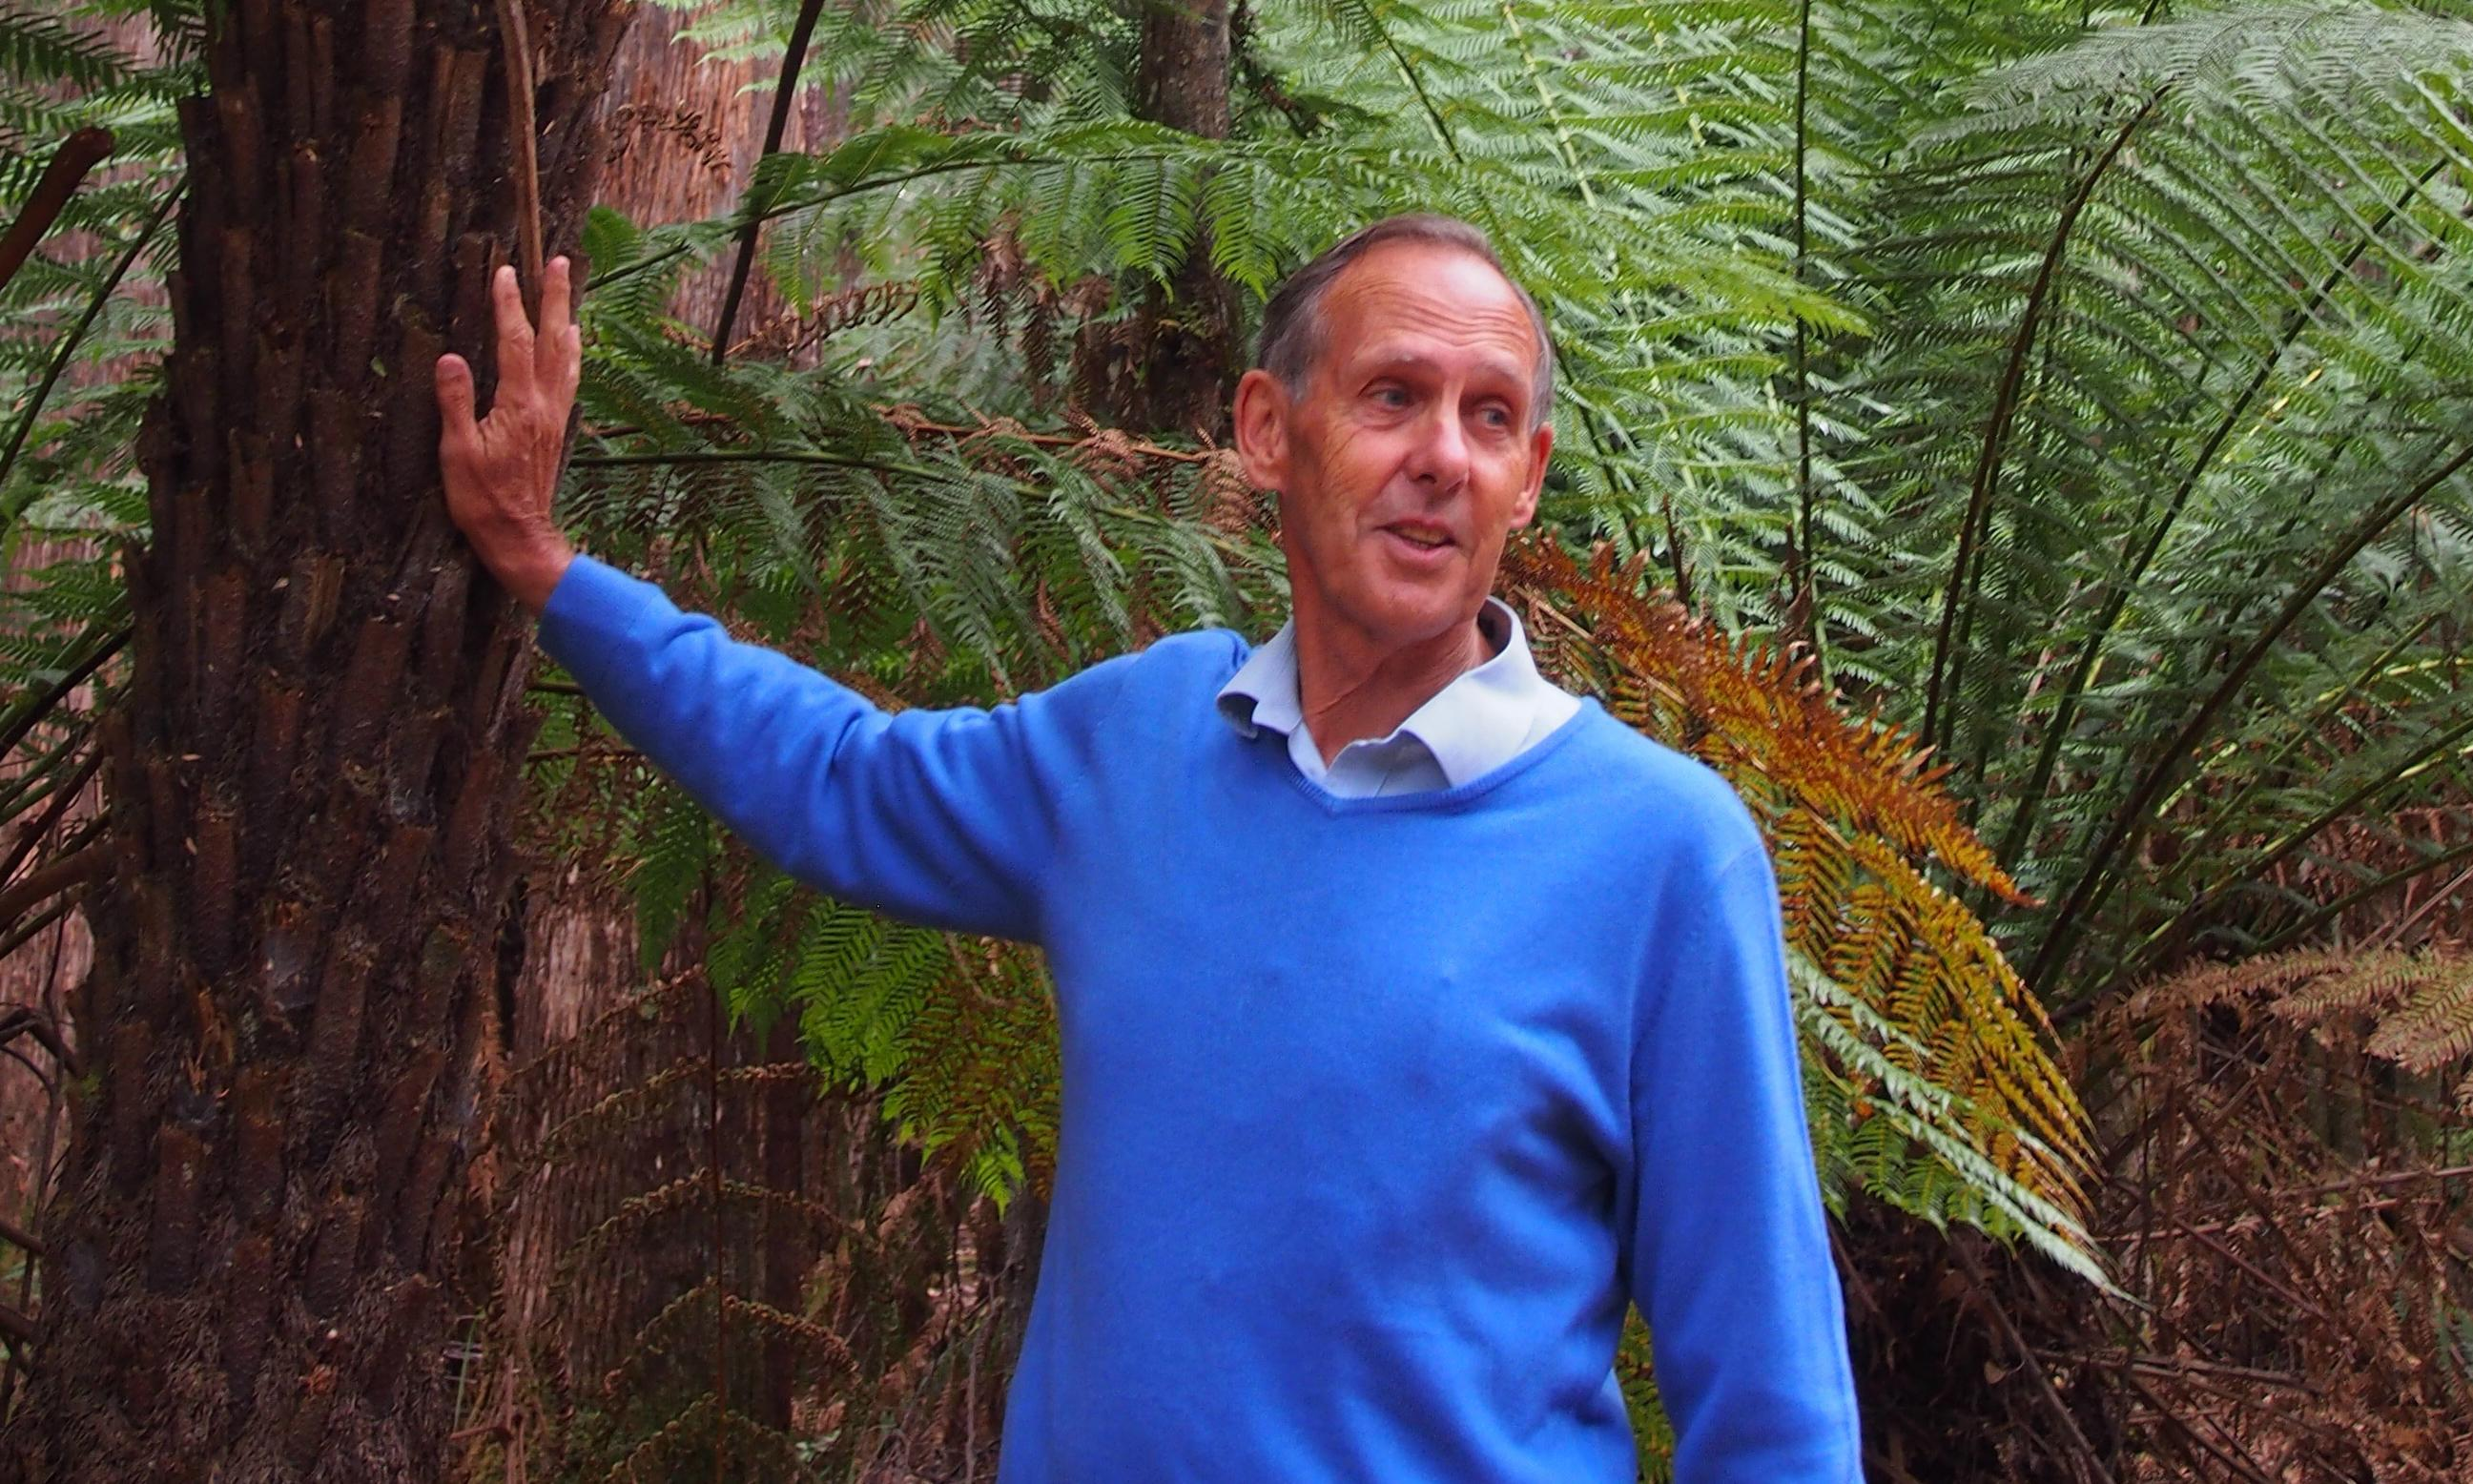 Tasmanian anti-logging protesters banned from forests over 'unsafe behaviour'